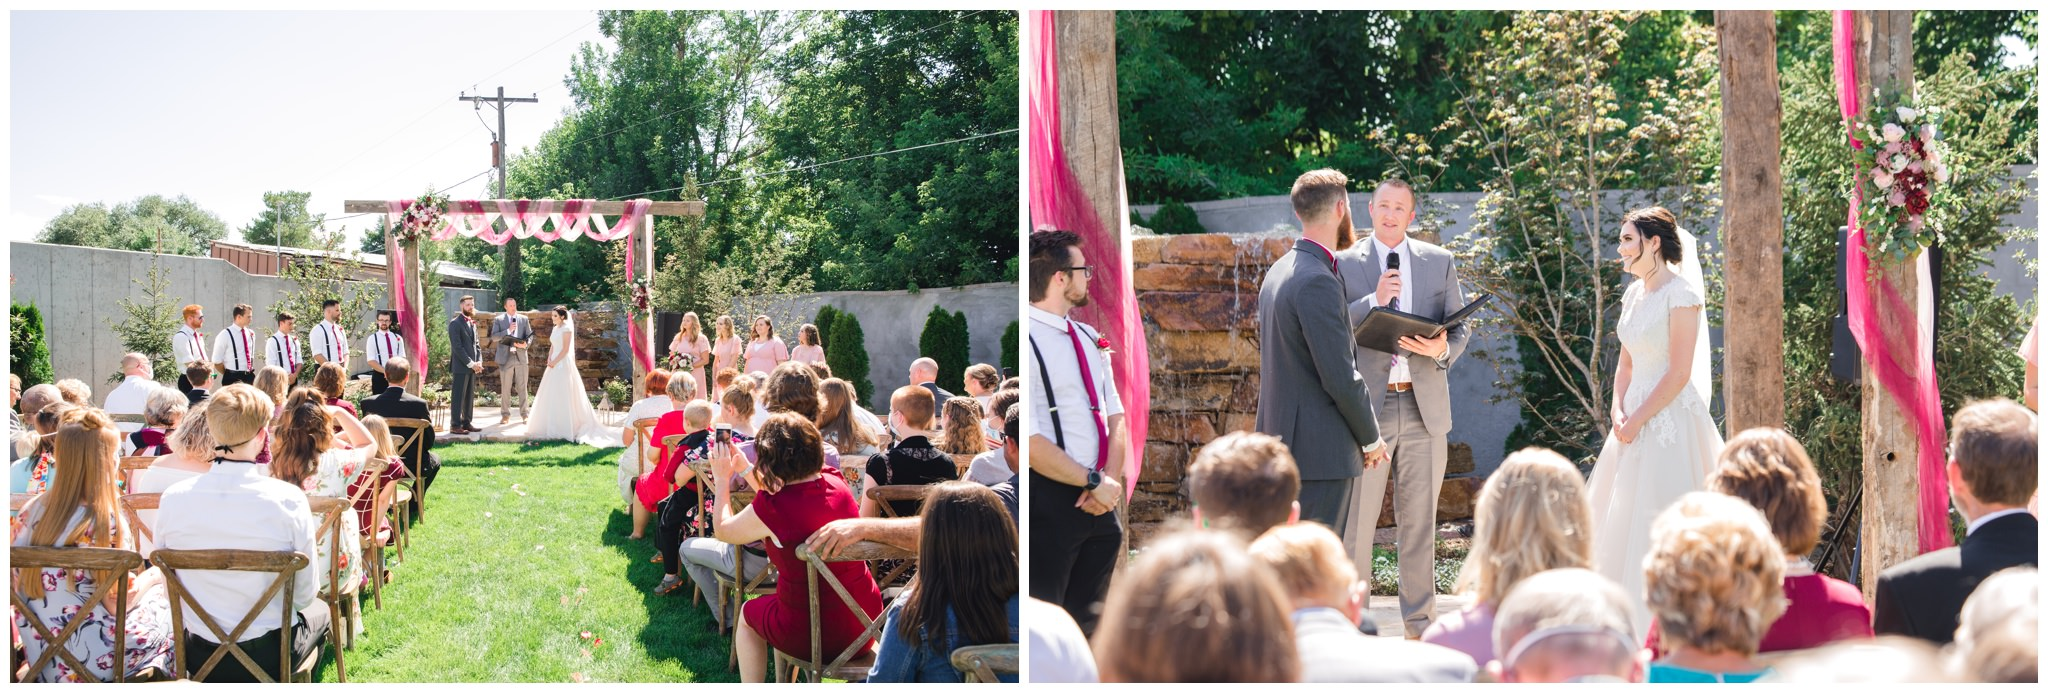 Summer wedding with burgundy and pink arch in  Lindon utah